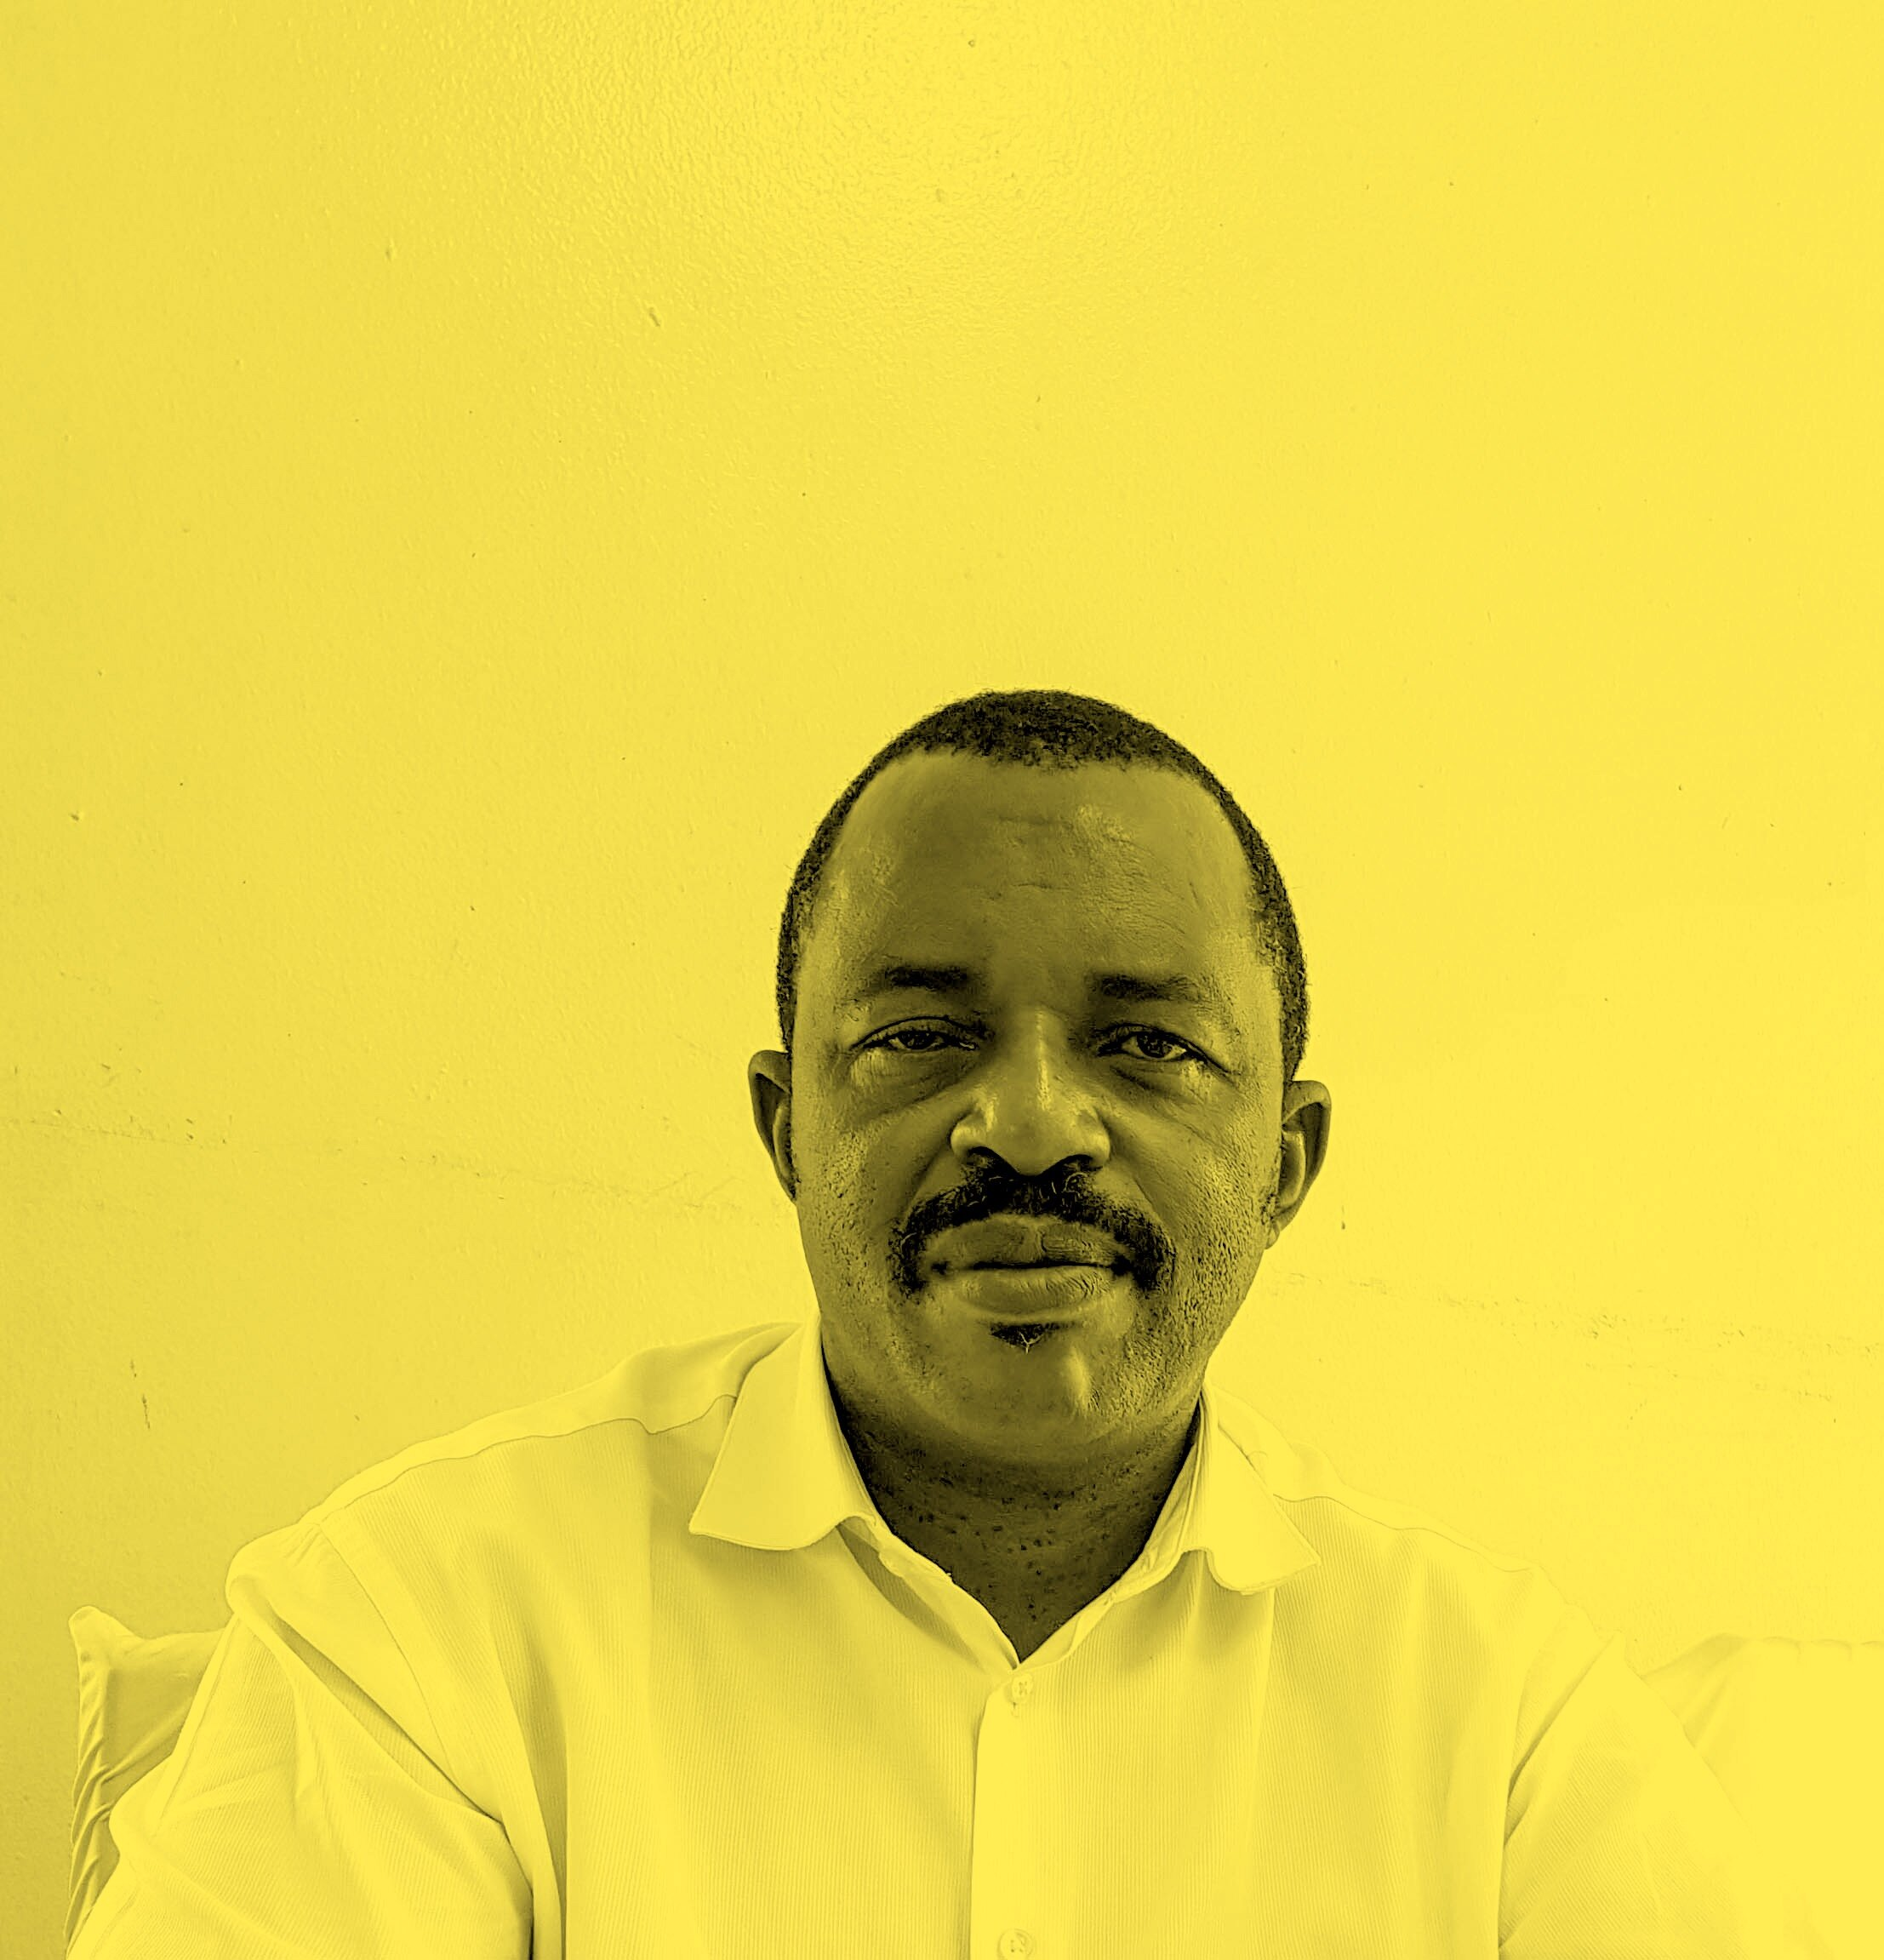 """Bonus fact:Sina Gérard created Akabanga in 1983 - In 1983, Sina Gérard opened a roadside food stall on Highway RN4 in the village of Nyirangarama. He sold mandazi, sweet fried dough that originated on the Swahili coast and has since spread all around the African Great Lakes region. Mandazi is everywhere; to differentiate his offerings, Sina began serving it with his own special condiment: chili oil pressed from the ripe flesh of the yellow peppers grown by the farmers nearby.Soon, customers began coming for the chili oil alone. Sina named it Akabanga. """"It means something like 'the little secret',"""" he says. """"If you put it on your food, you will understand the secret."""""""